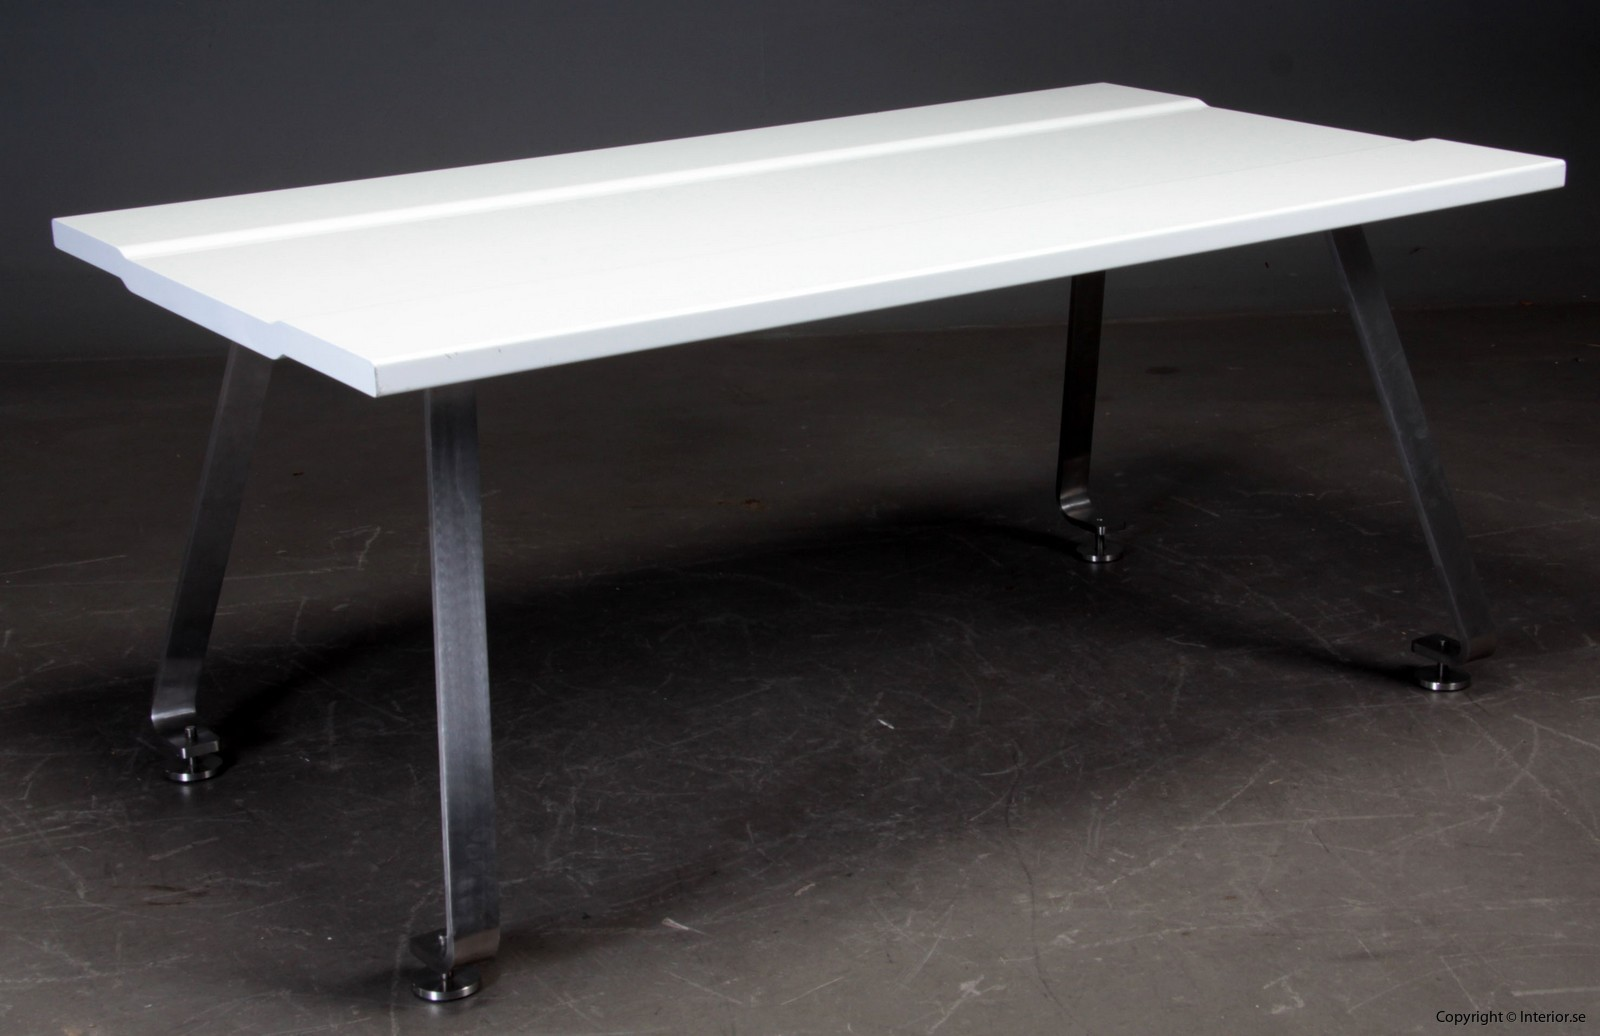 Unikt konferensbord conference table, Design Johannes Torpe danish design - 180 x 100 cm